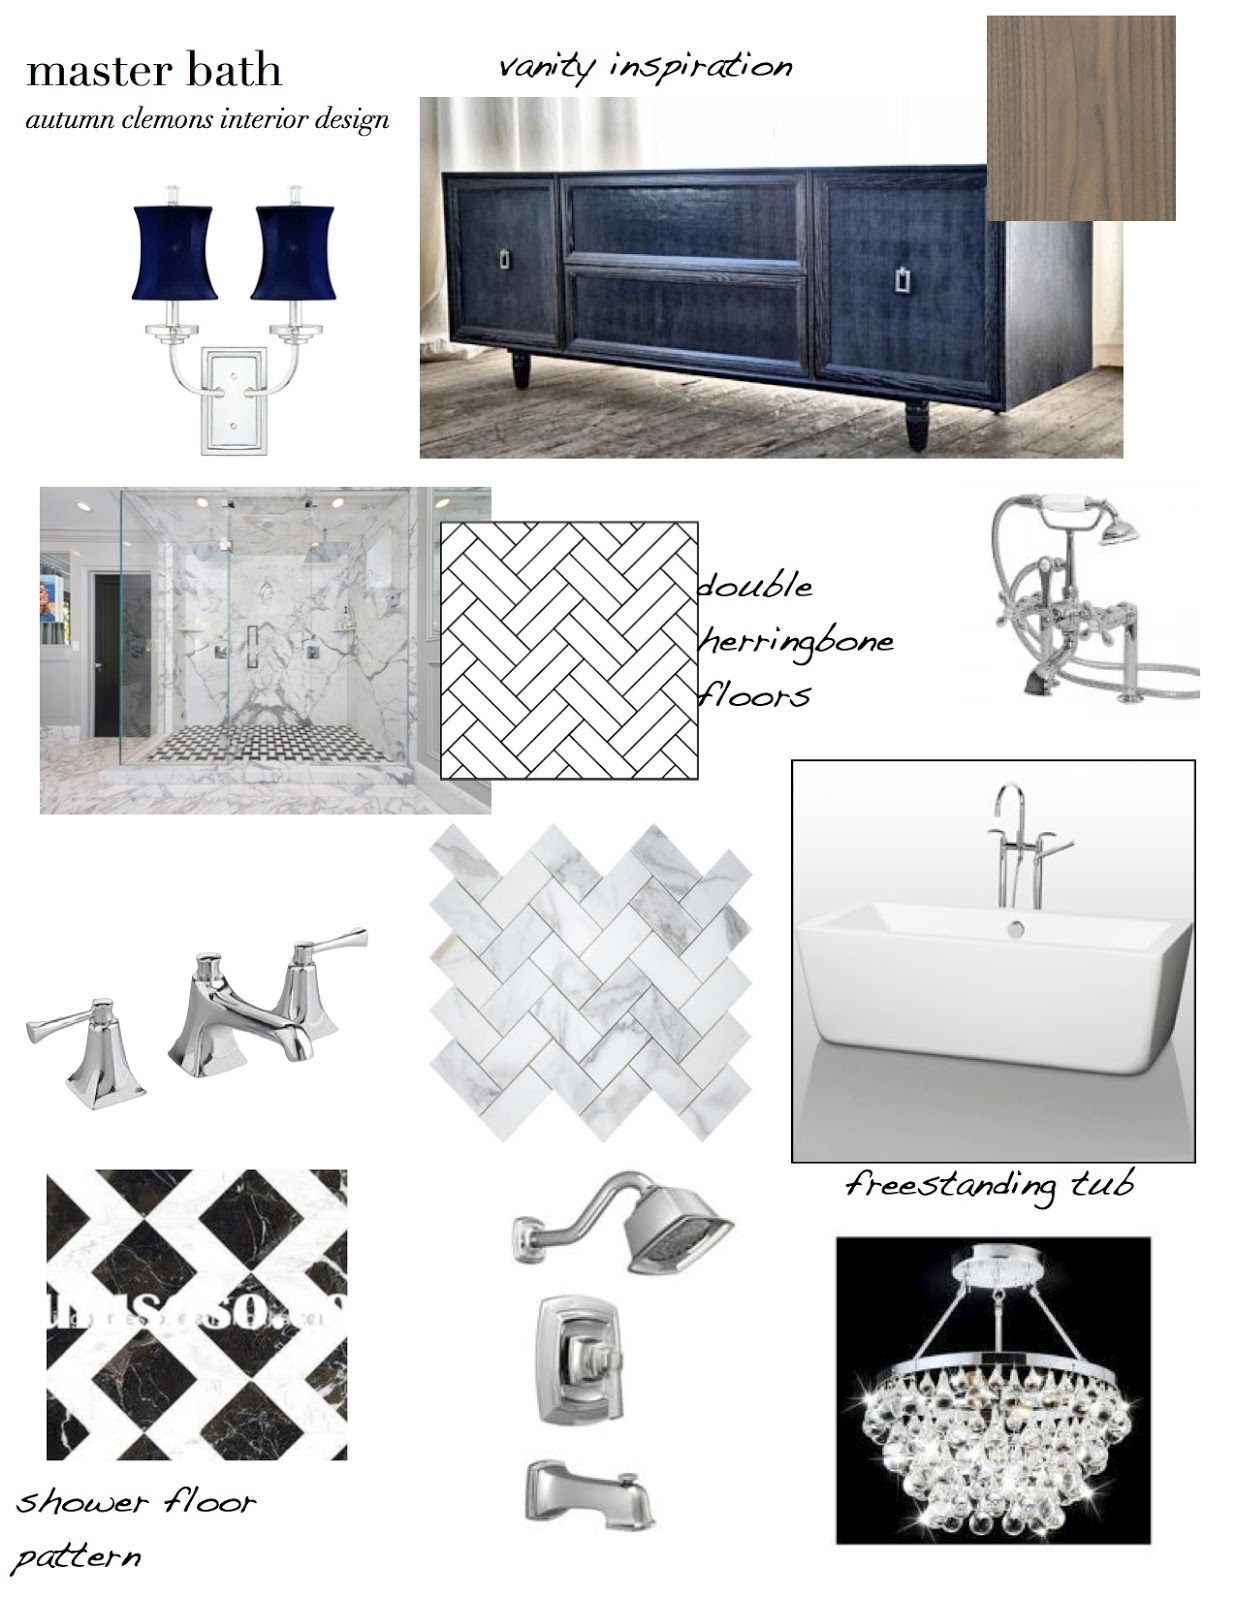 Bathroom Design Board design dump: my new house: master bathroom idea board